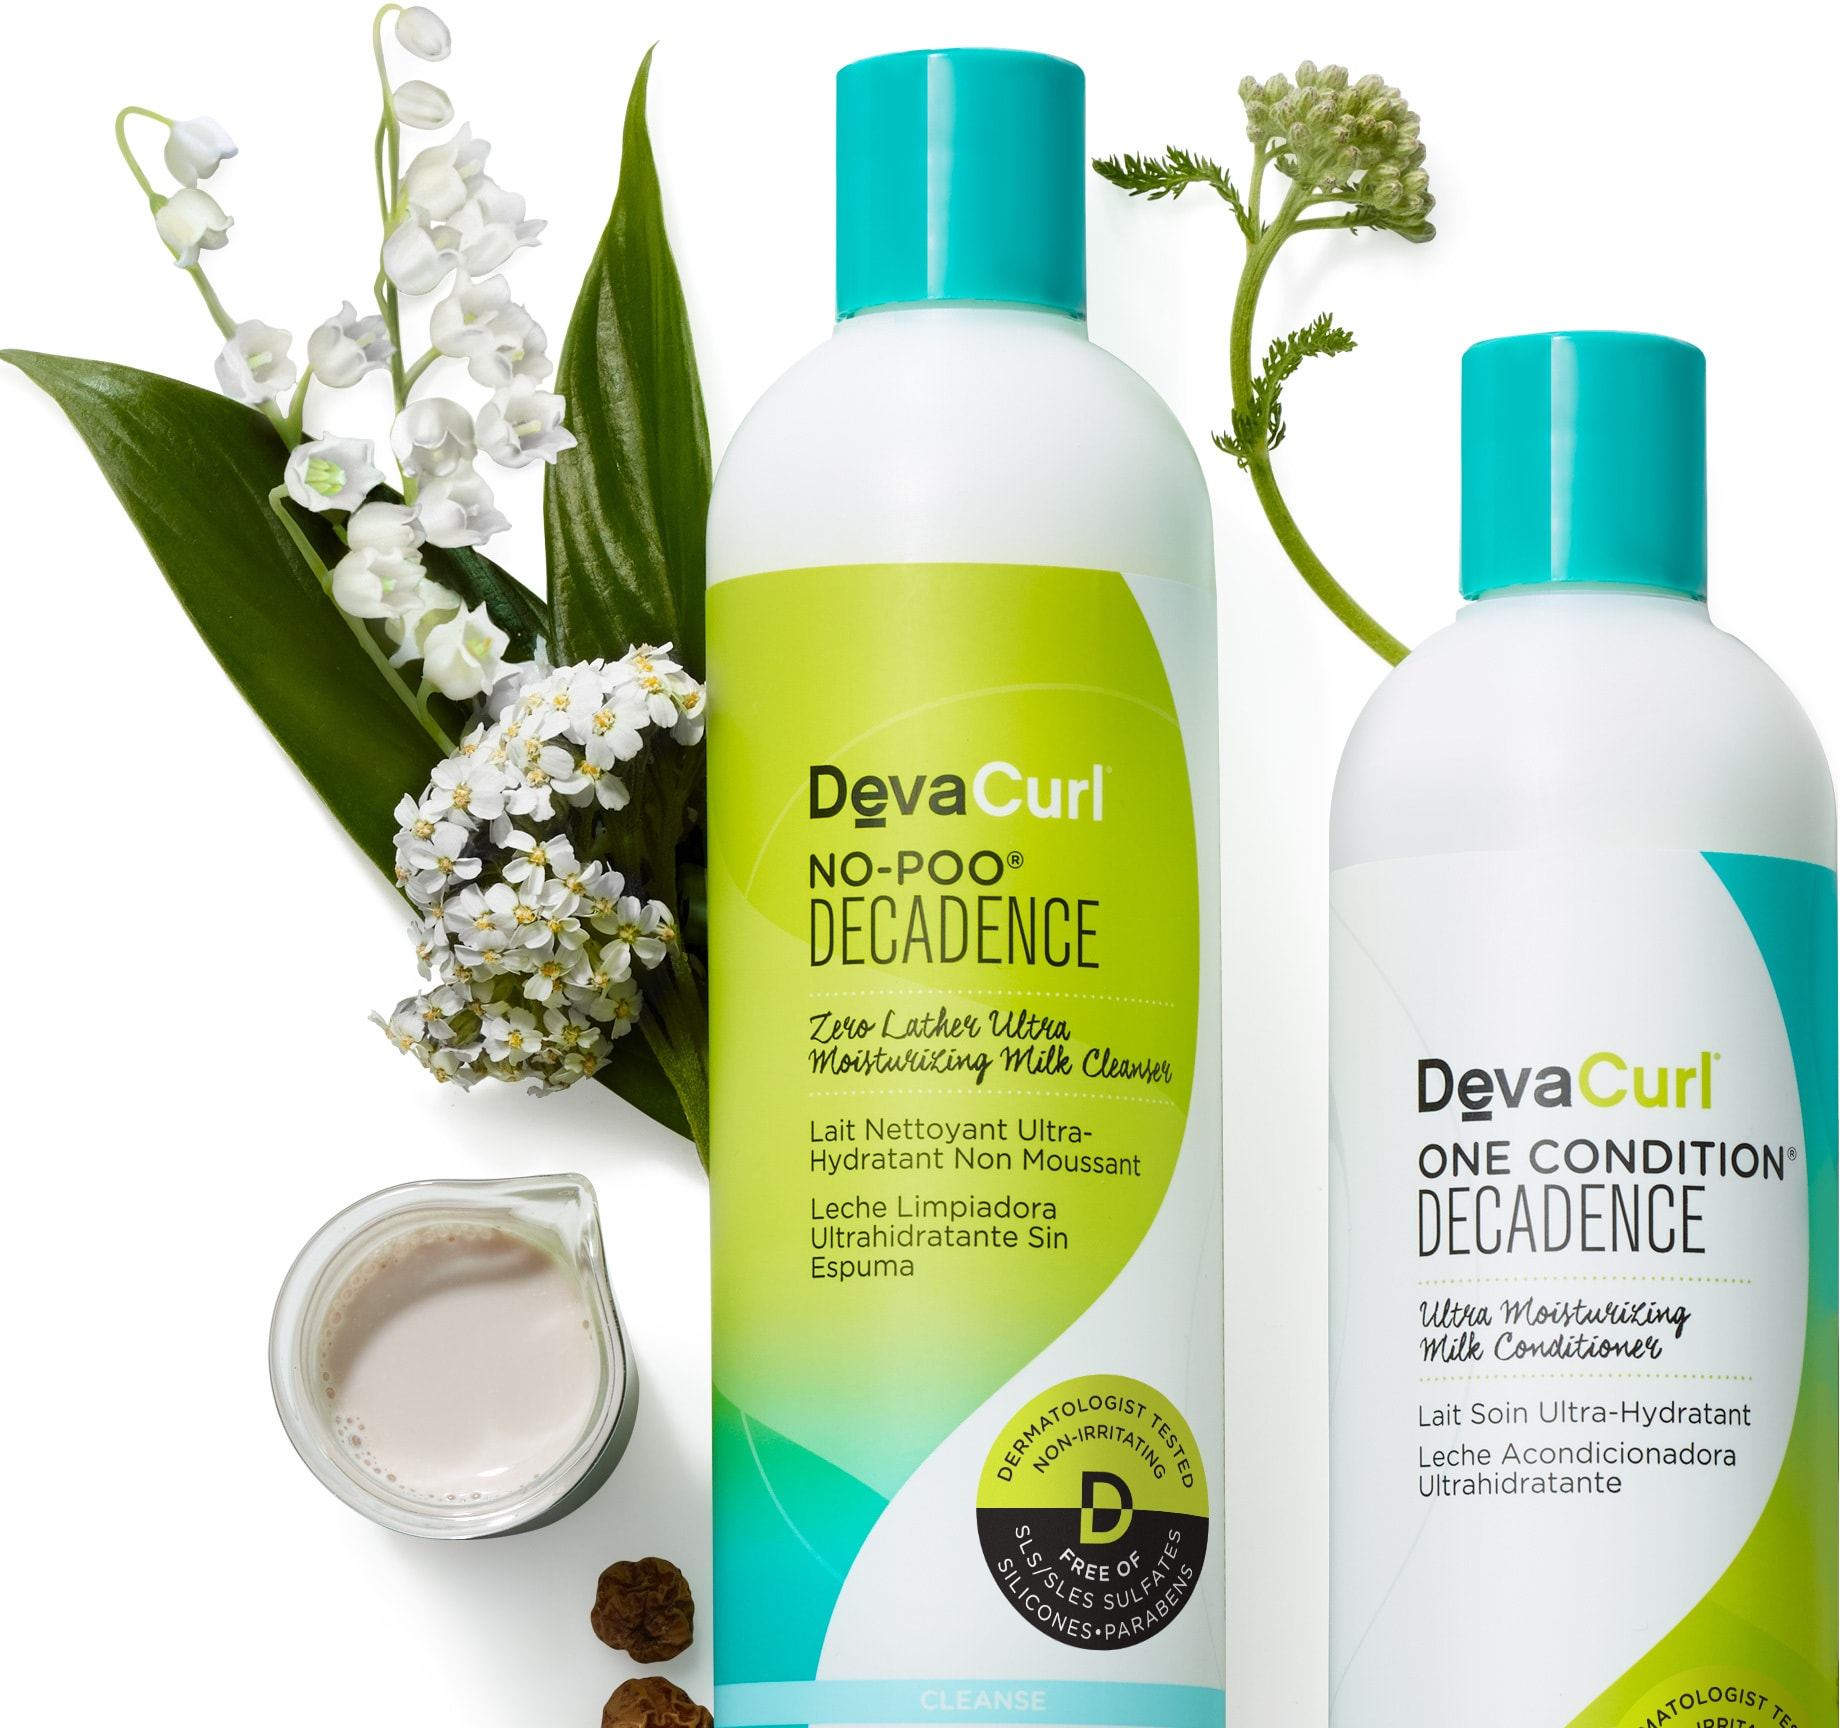 devacurl decadence cleanser & conditioner bottles with raw ingredients